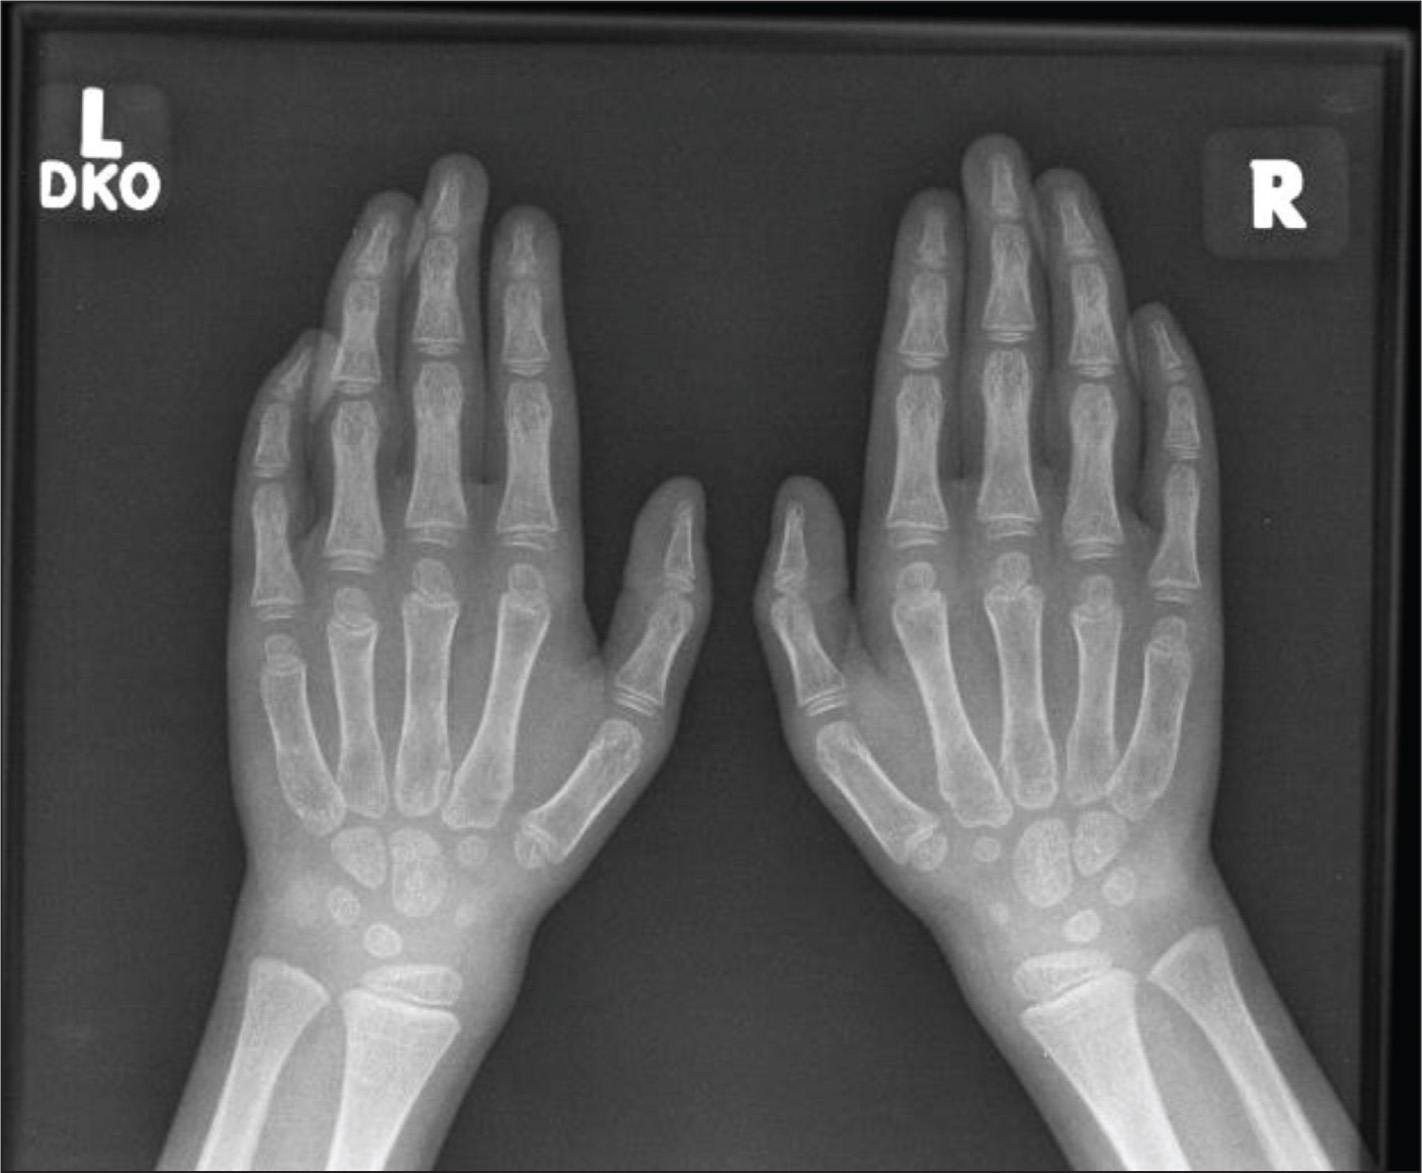 Radiograph of the hands shows mild flexion contractures at the fifth distal interphalangeal joints bilaterally, as well as generalized osteopenia.